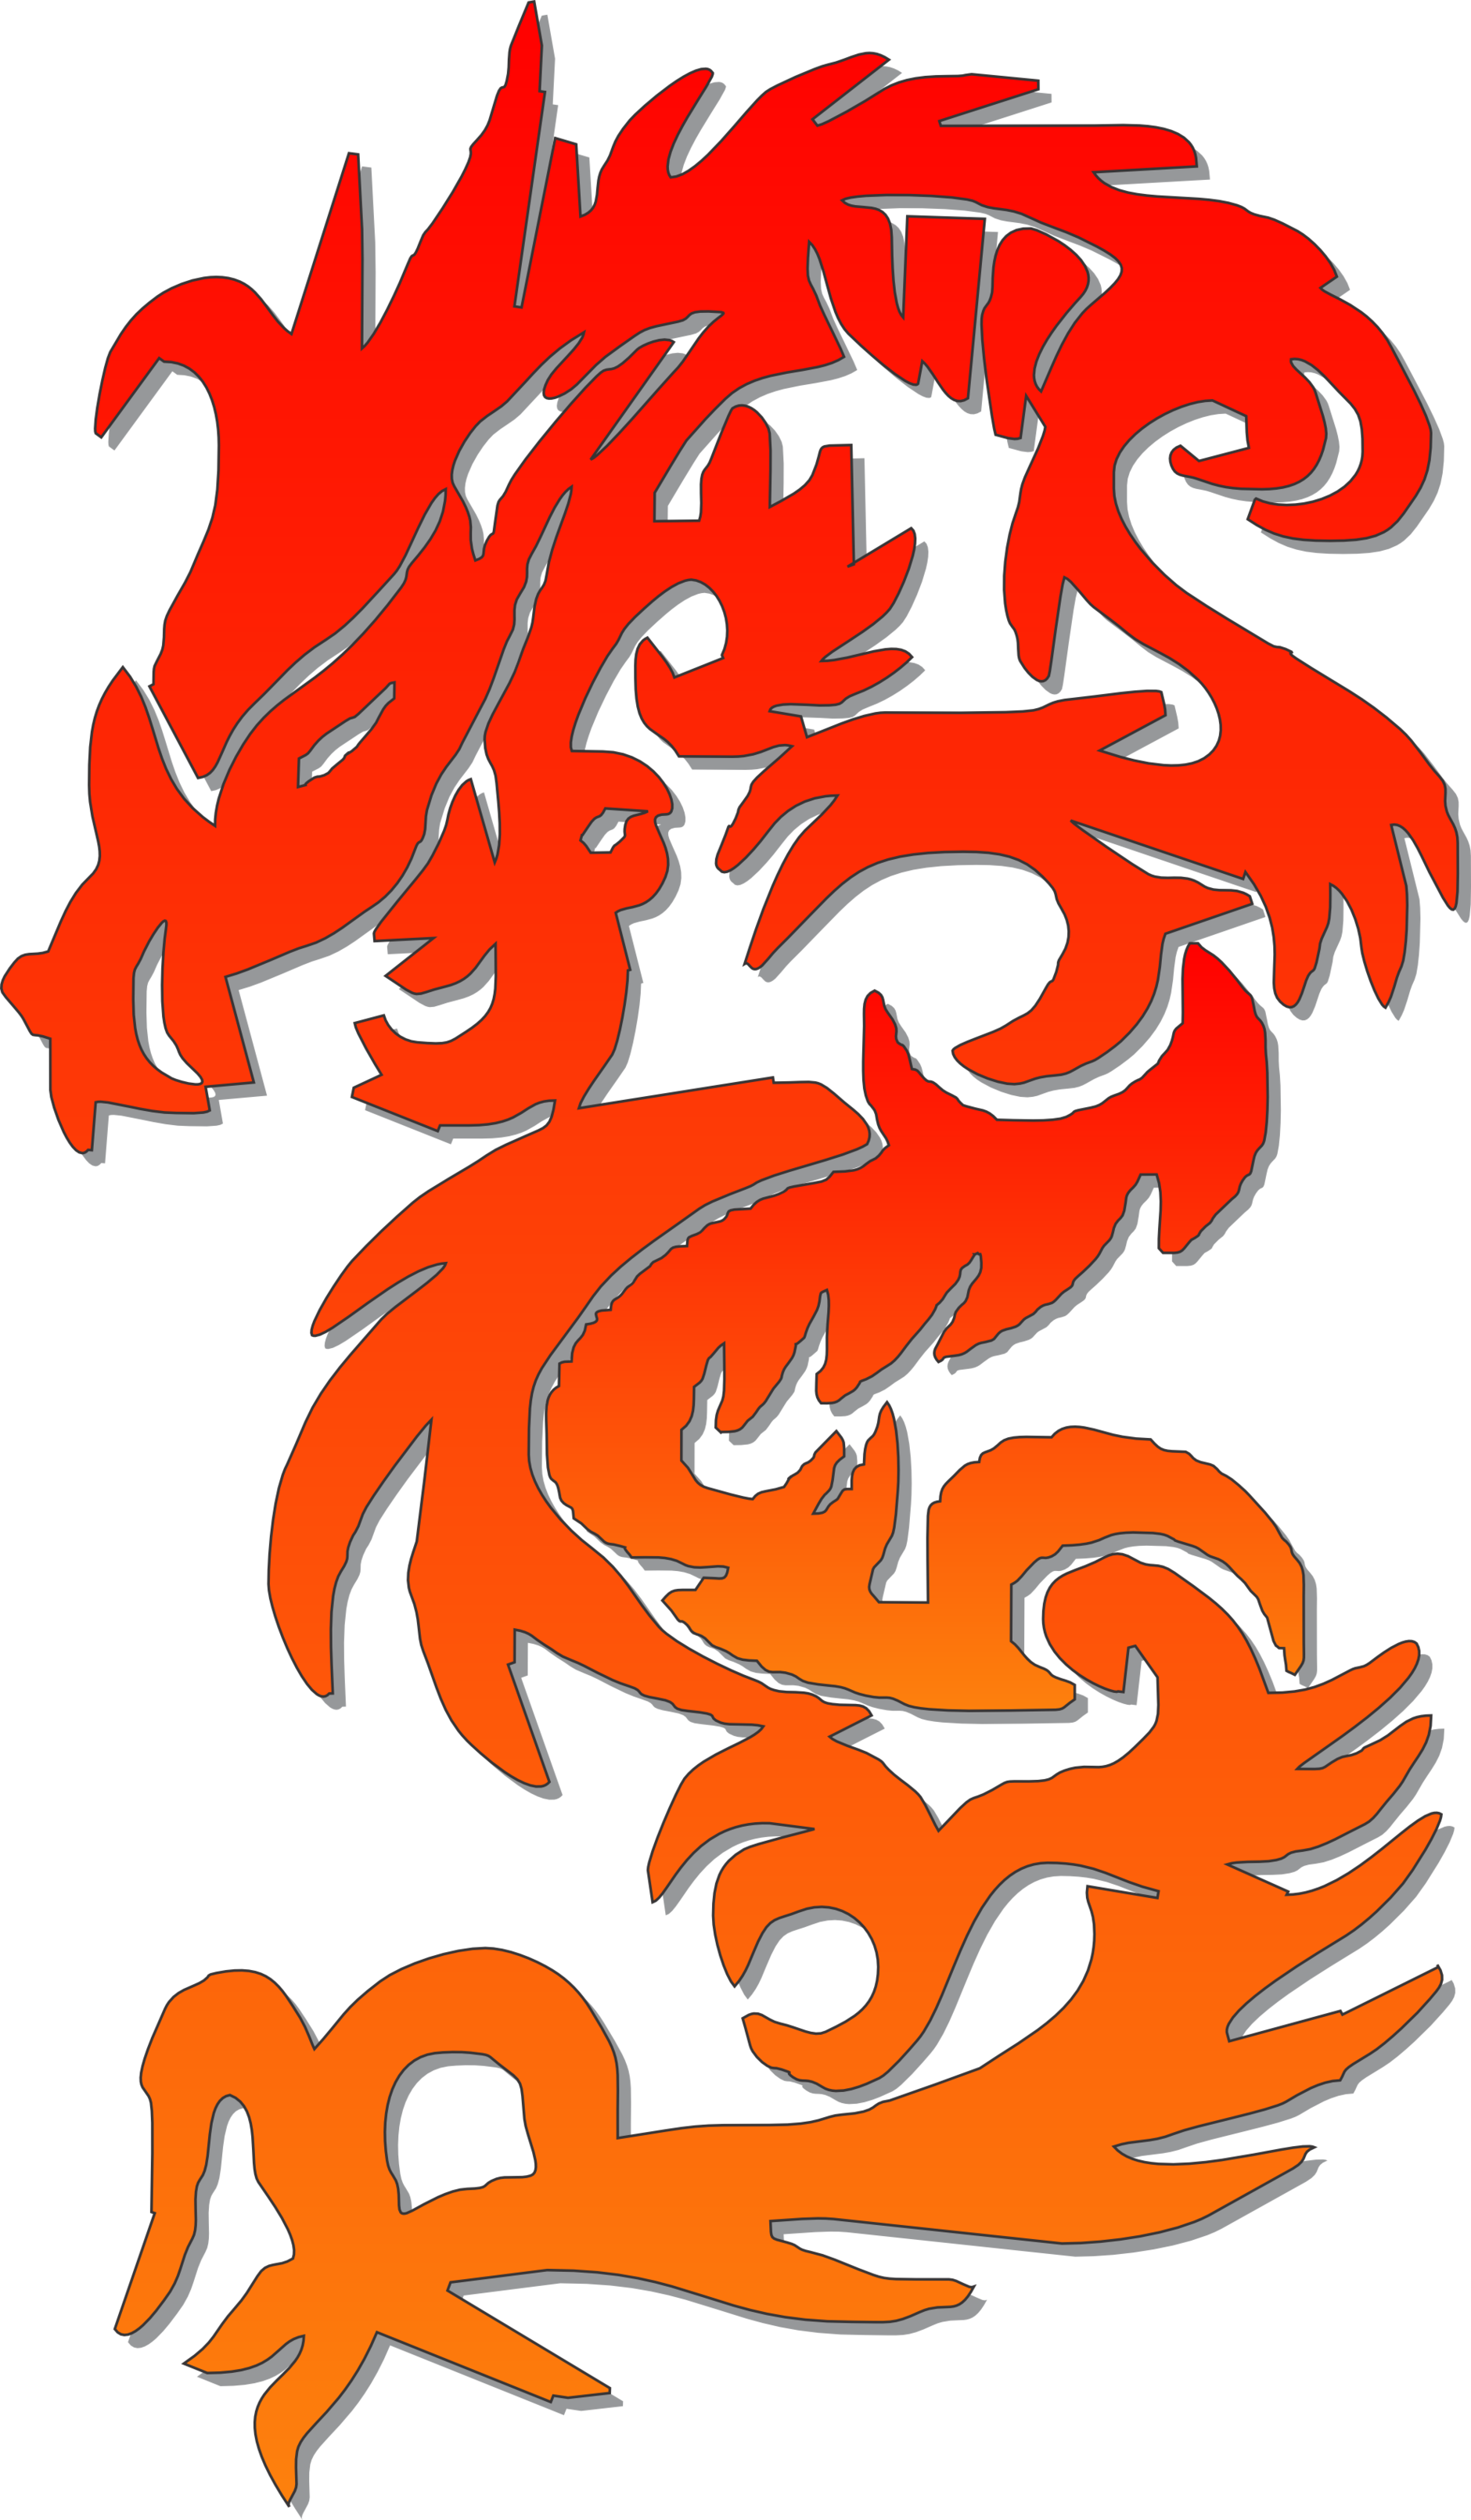 Hurricane clipart abstract. Chinese dragon calendar embroidery